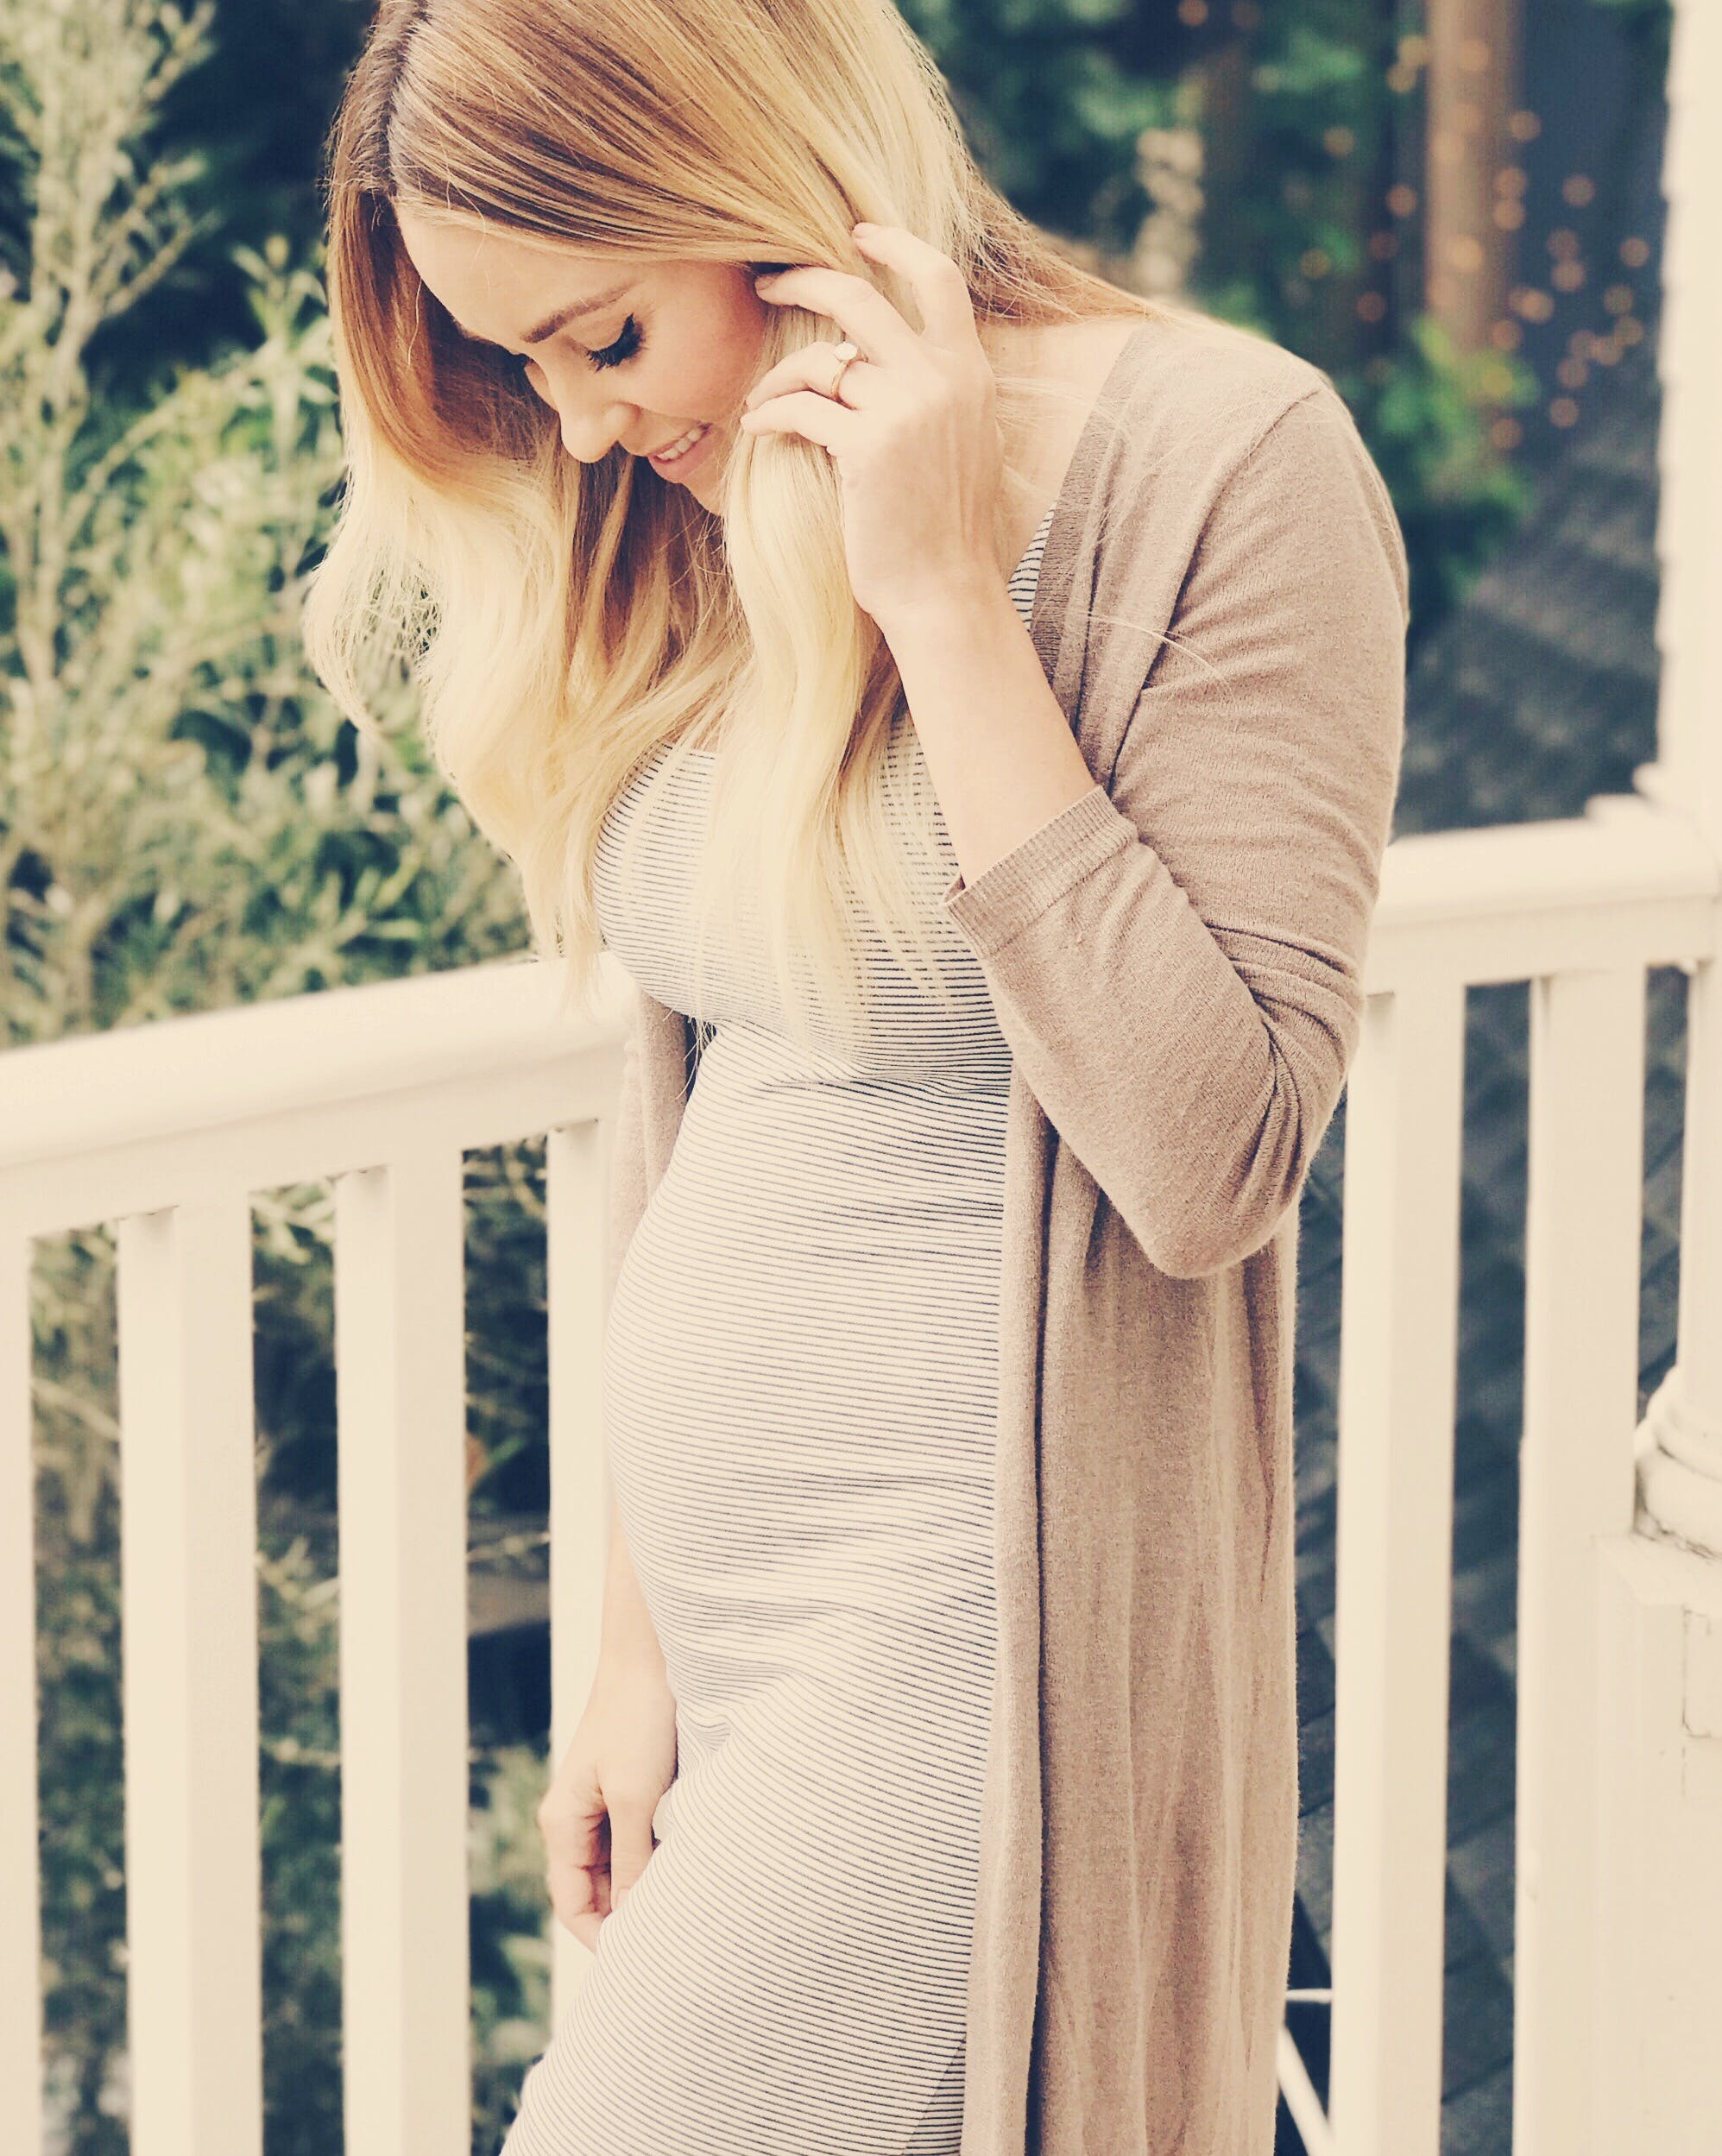 lauren conrad celebrity babies due in 2017